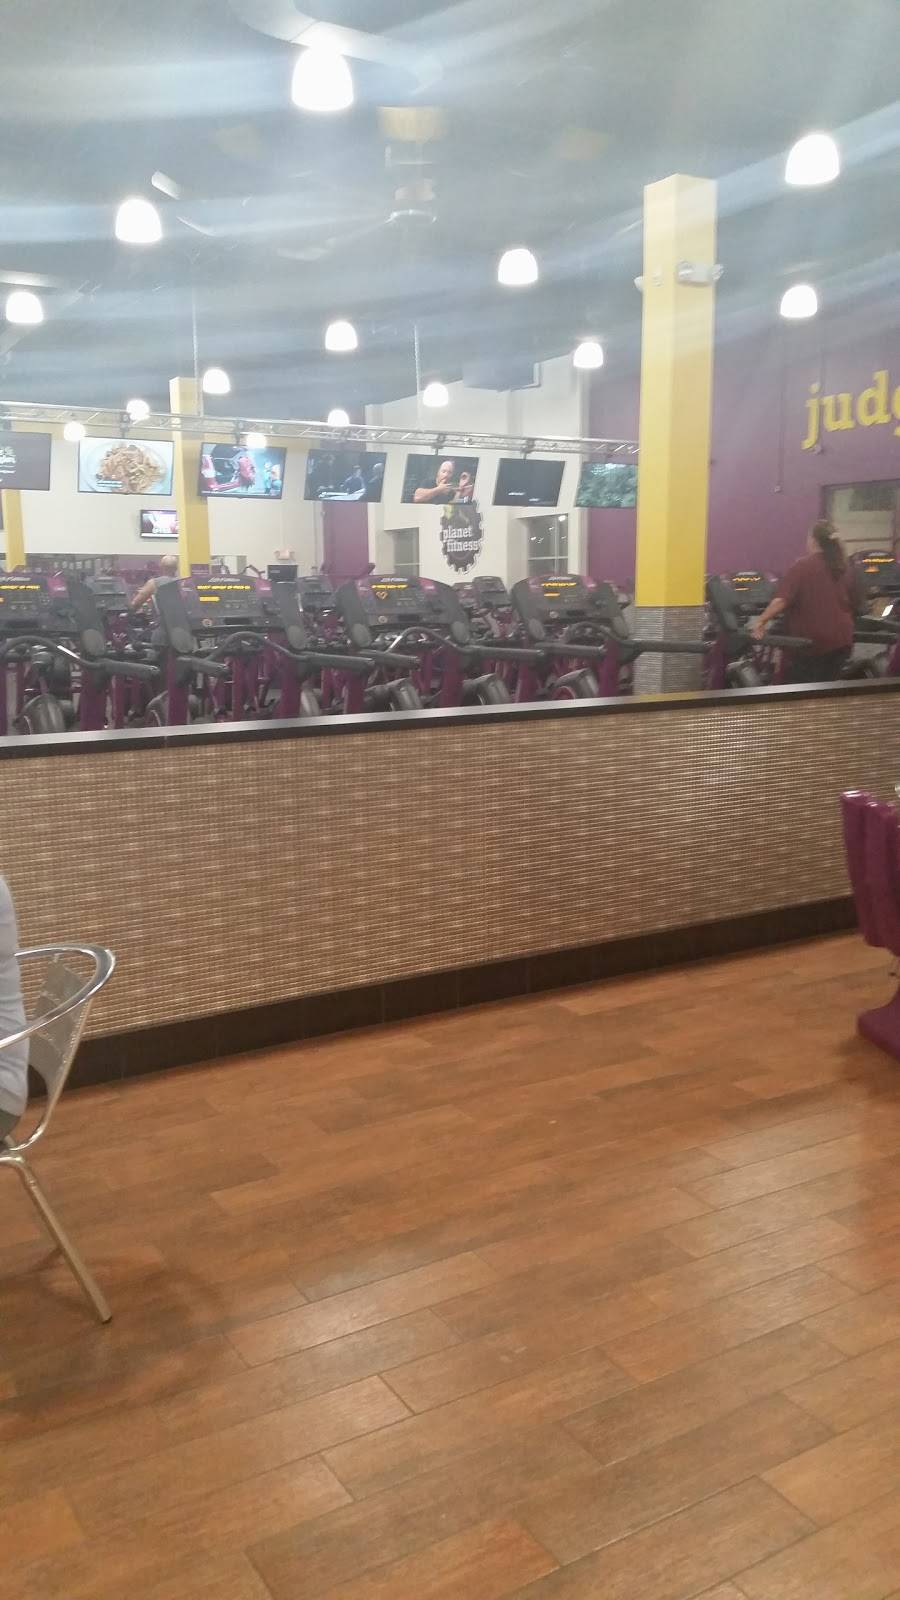 Planet Fitness - gym  | Photo 6 of 8 | Address: 60 Coon Rapids Blvd NW, Coon Rapids, MN 55448, USA | Phone: (763) 784-7677